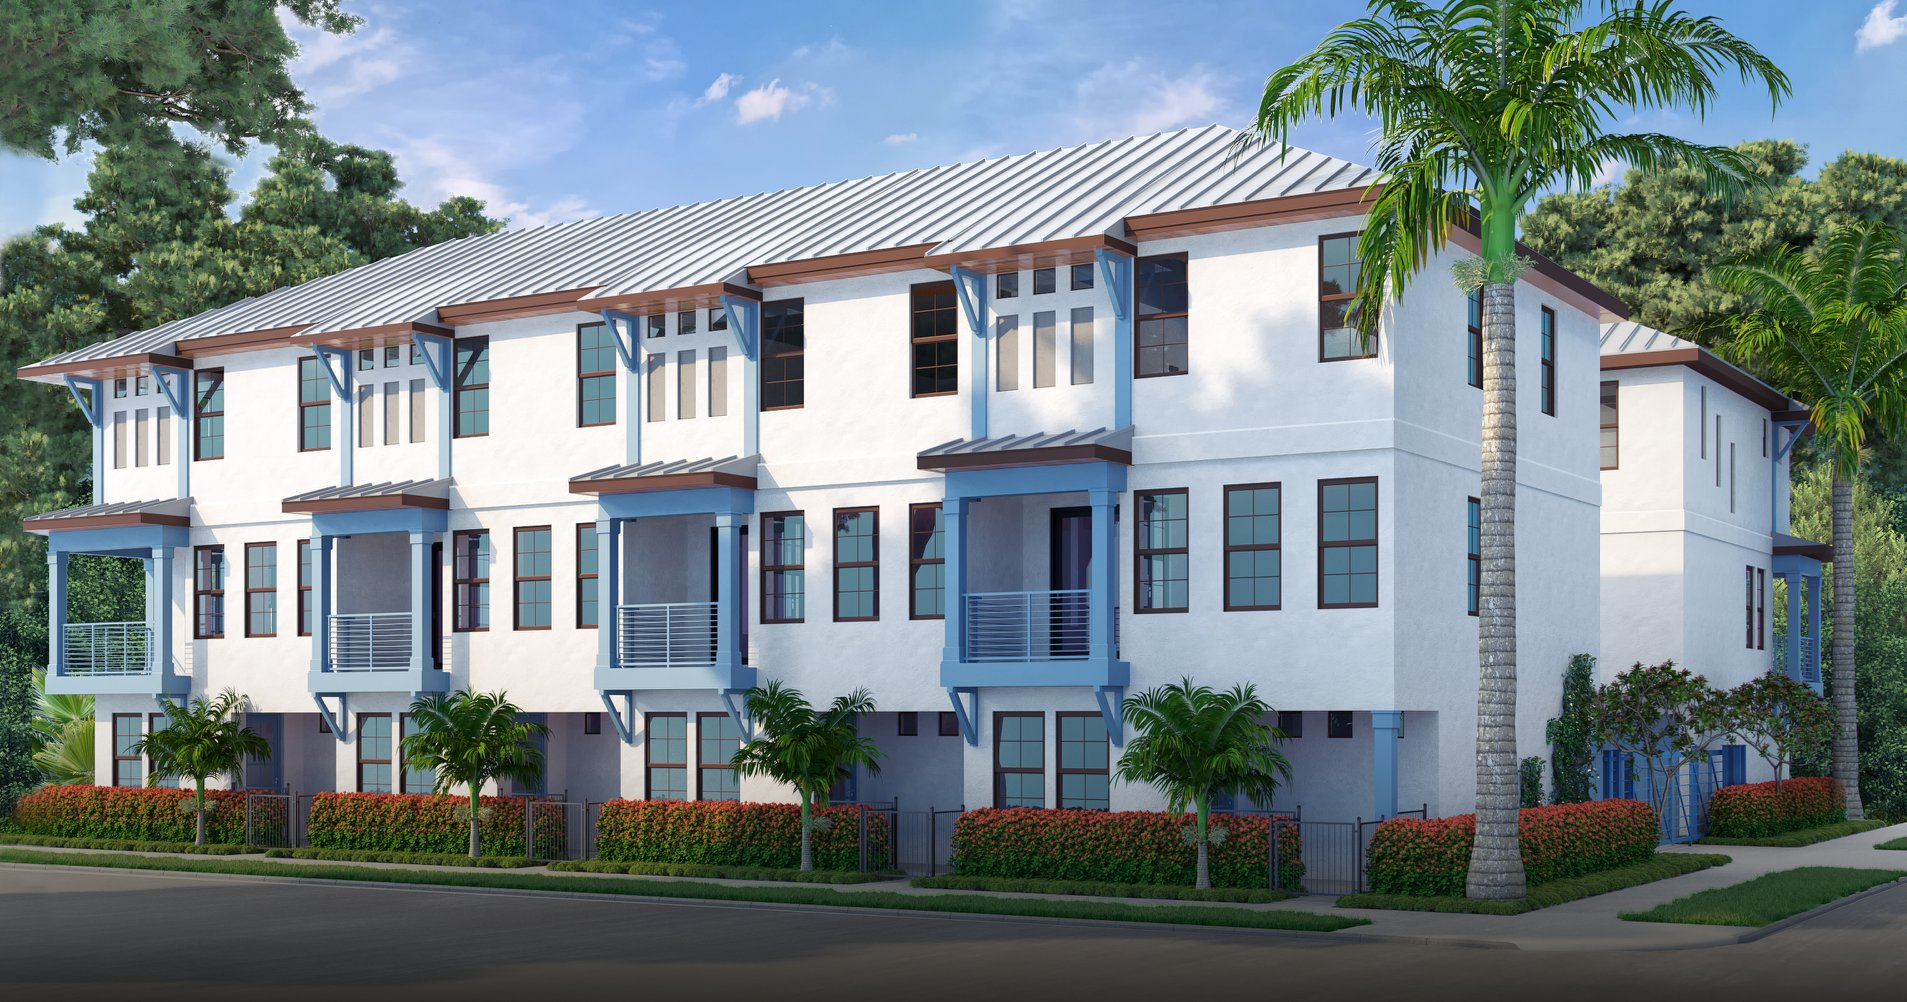 An exterior rendering of the Saint James Townhomes